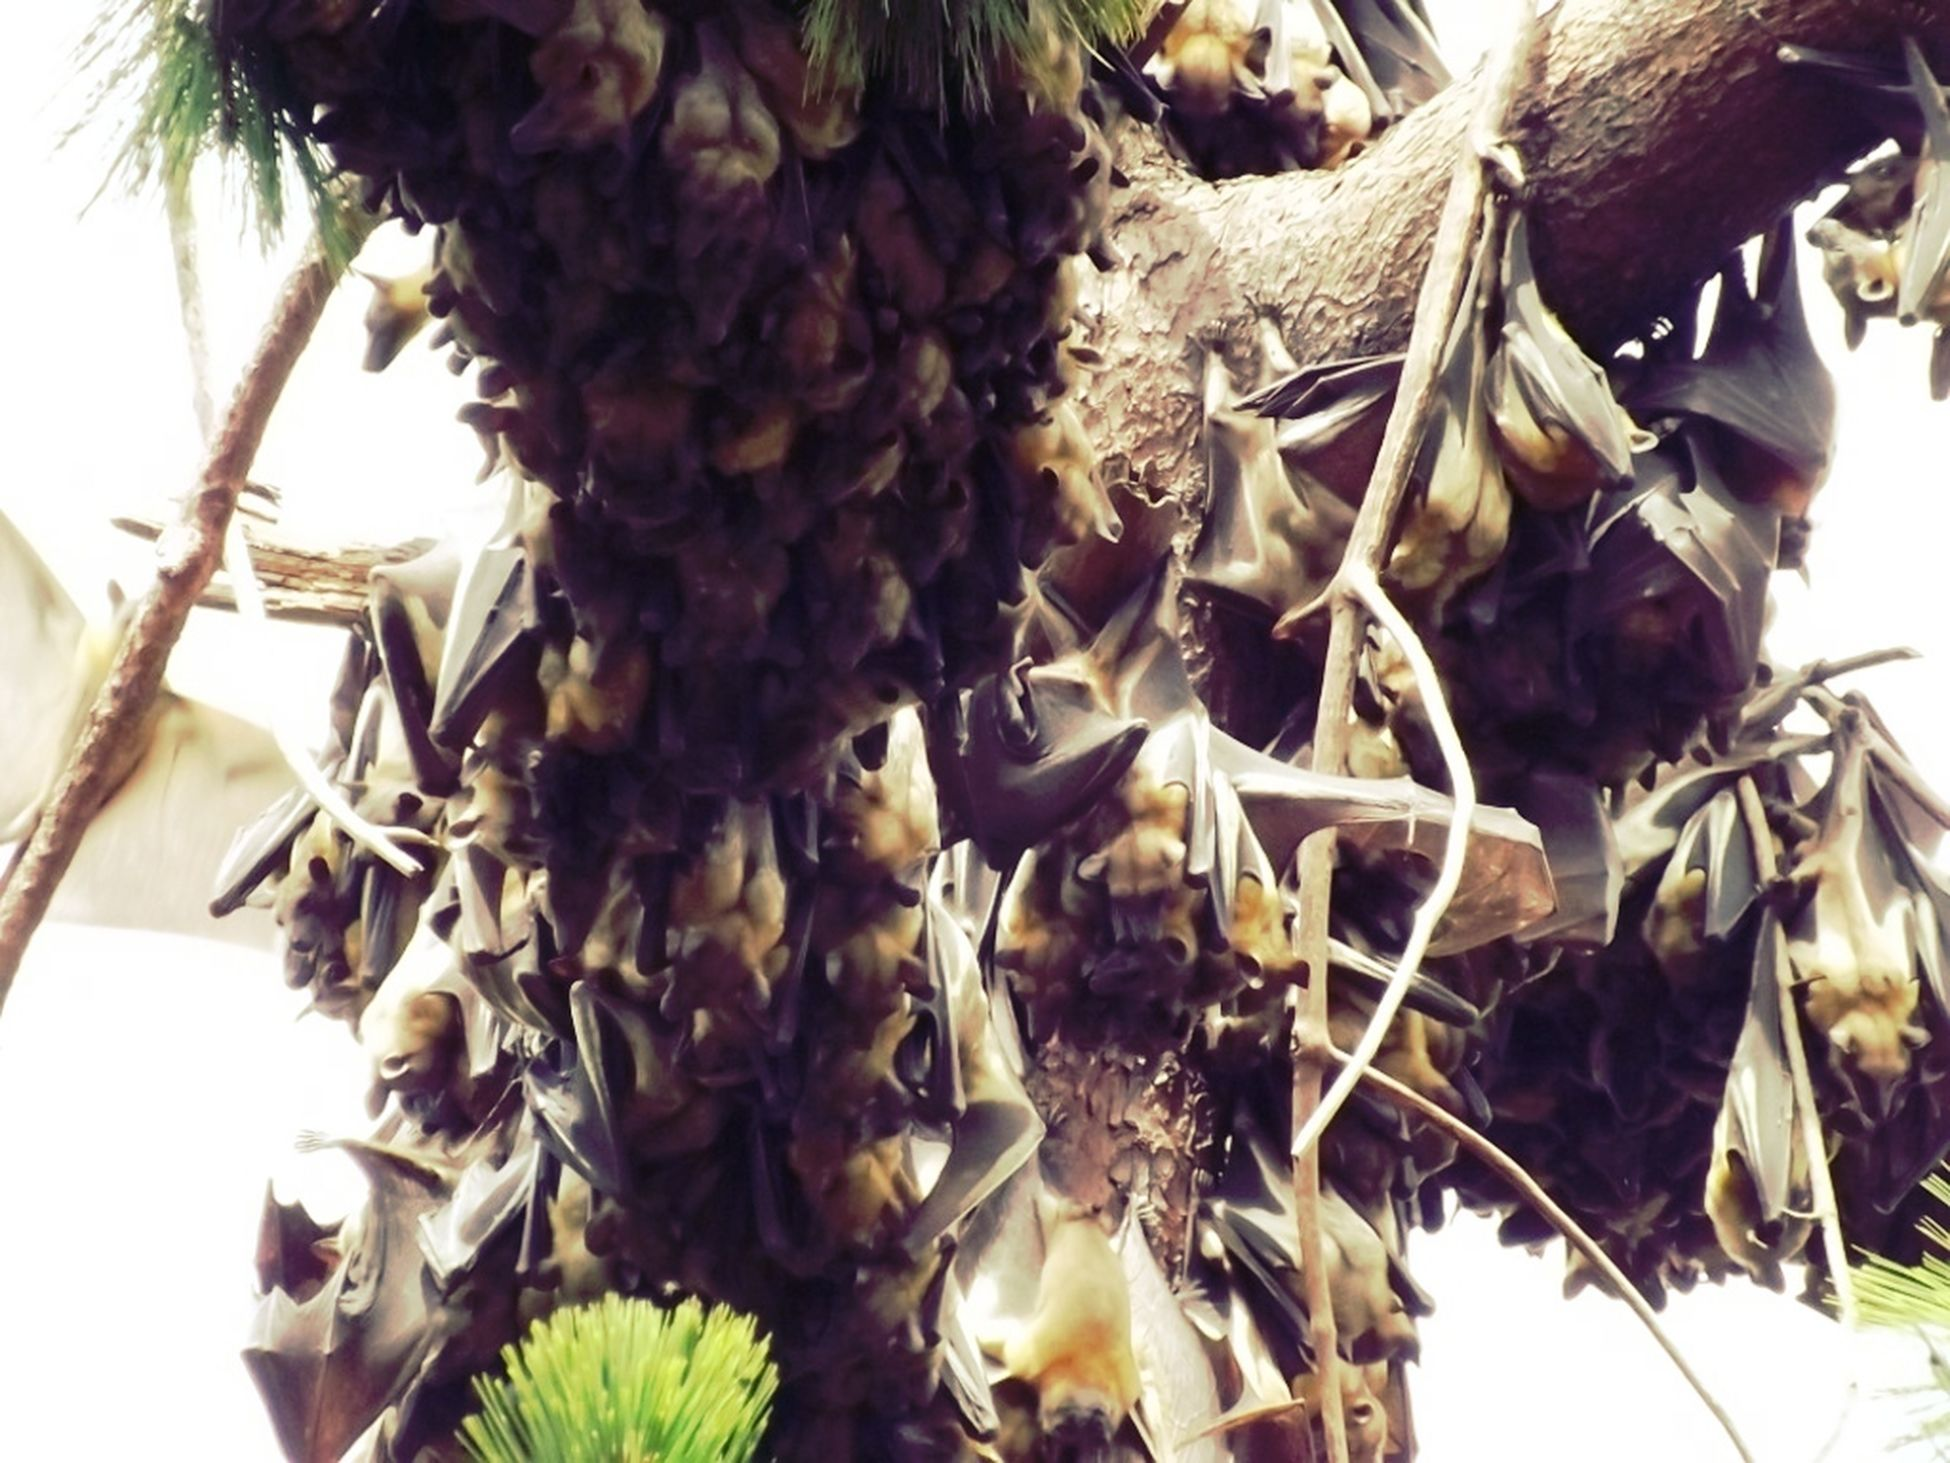 leaf, food, food and drink, close-up, healthy eating, growth, freshness, fruit, dry, tree, low angle view, hanging, nature, pine cone, abundance, plant, day, no people, bunch, outdoors